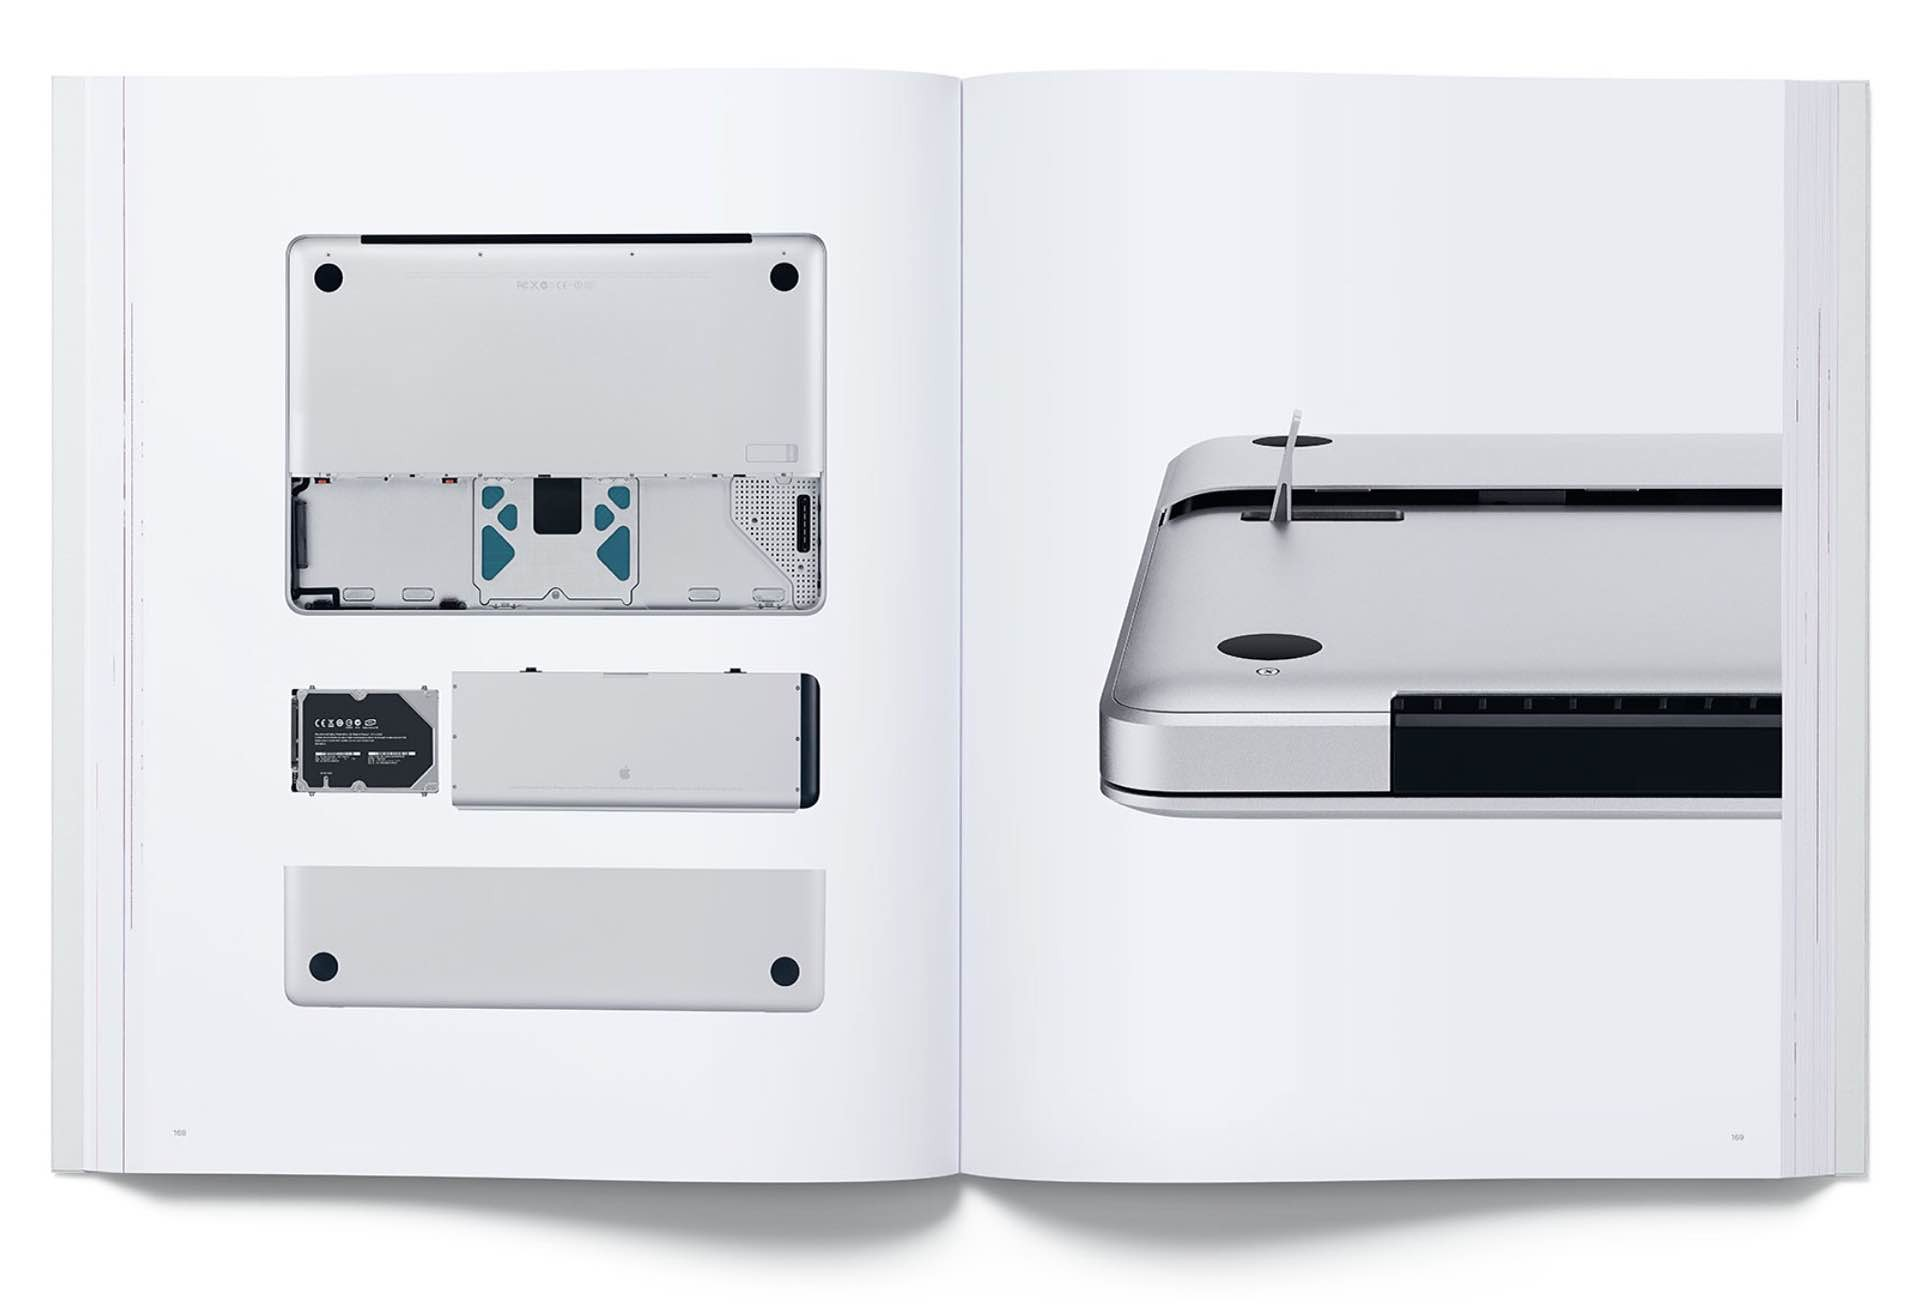 Apple 39 s designed by apple in california photo book for Apple design book